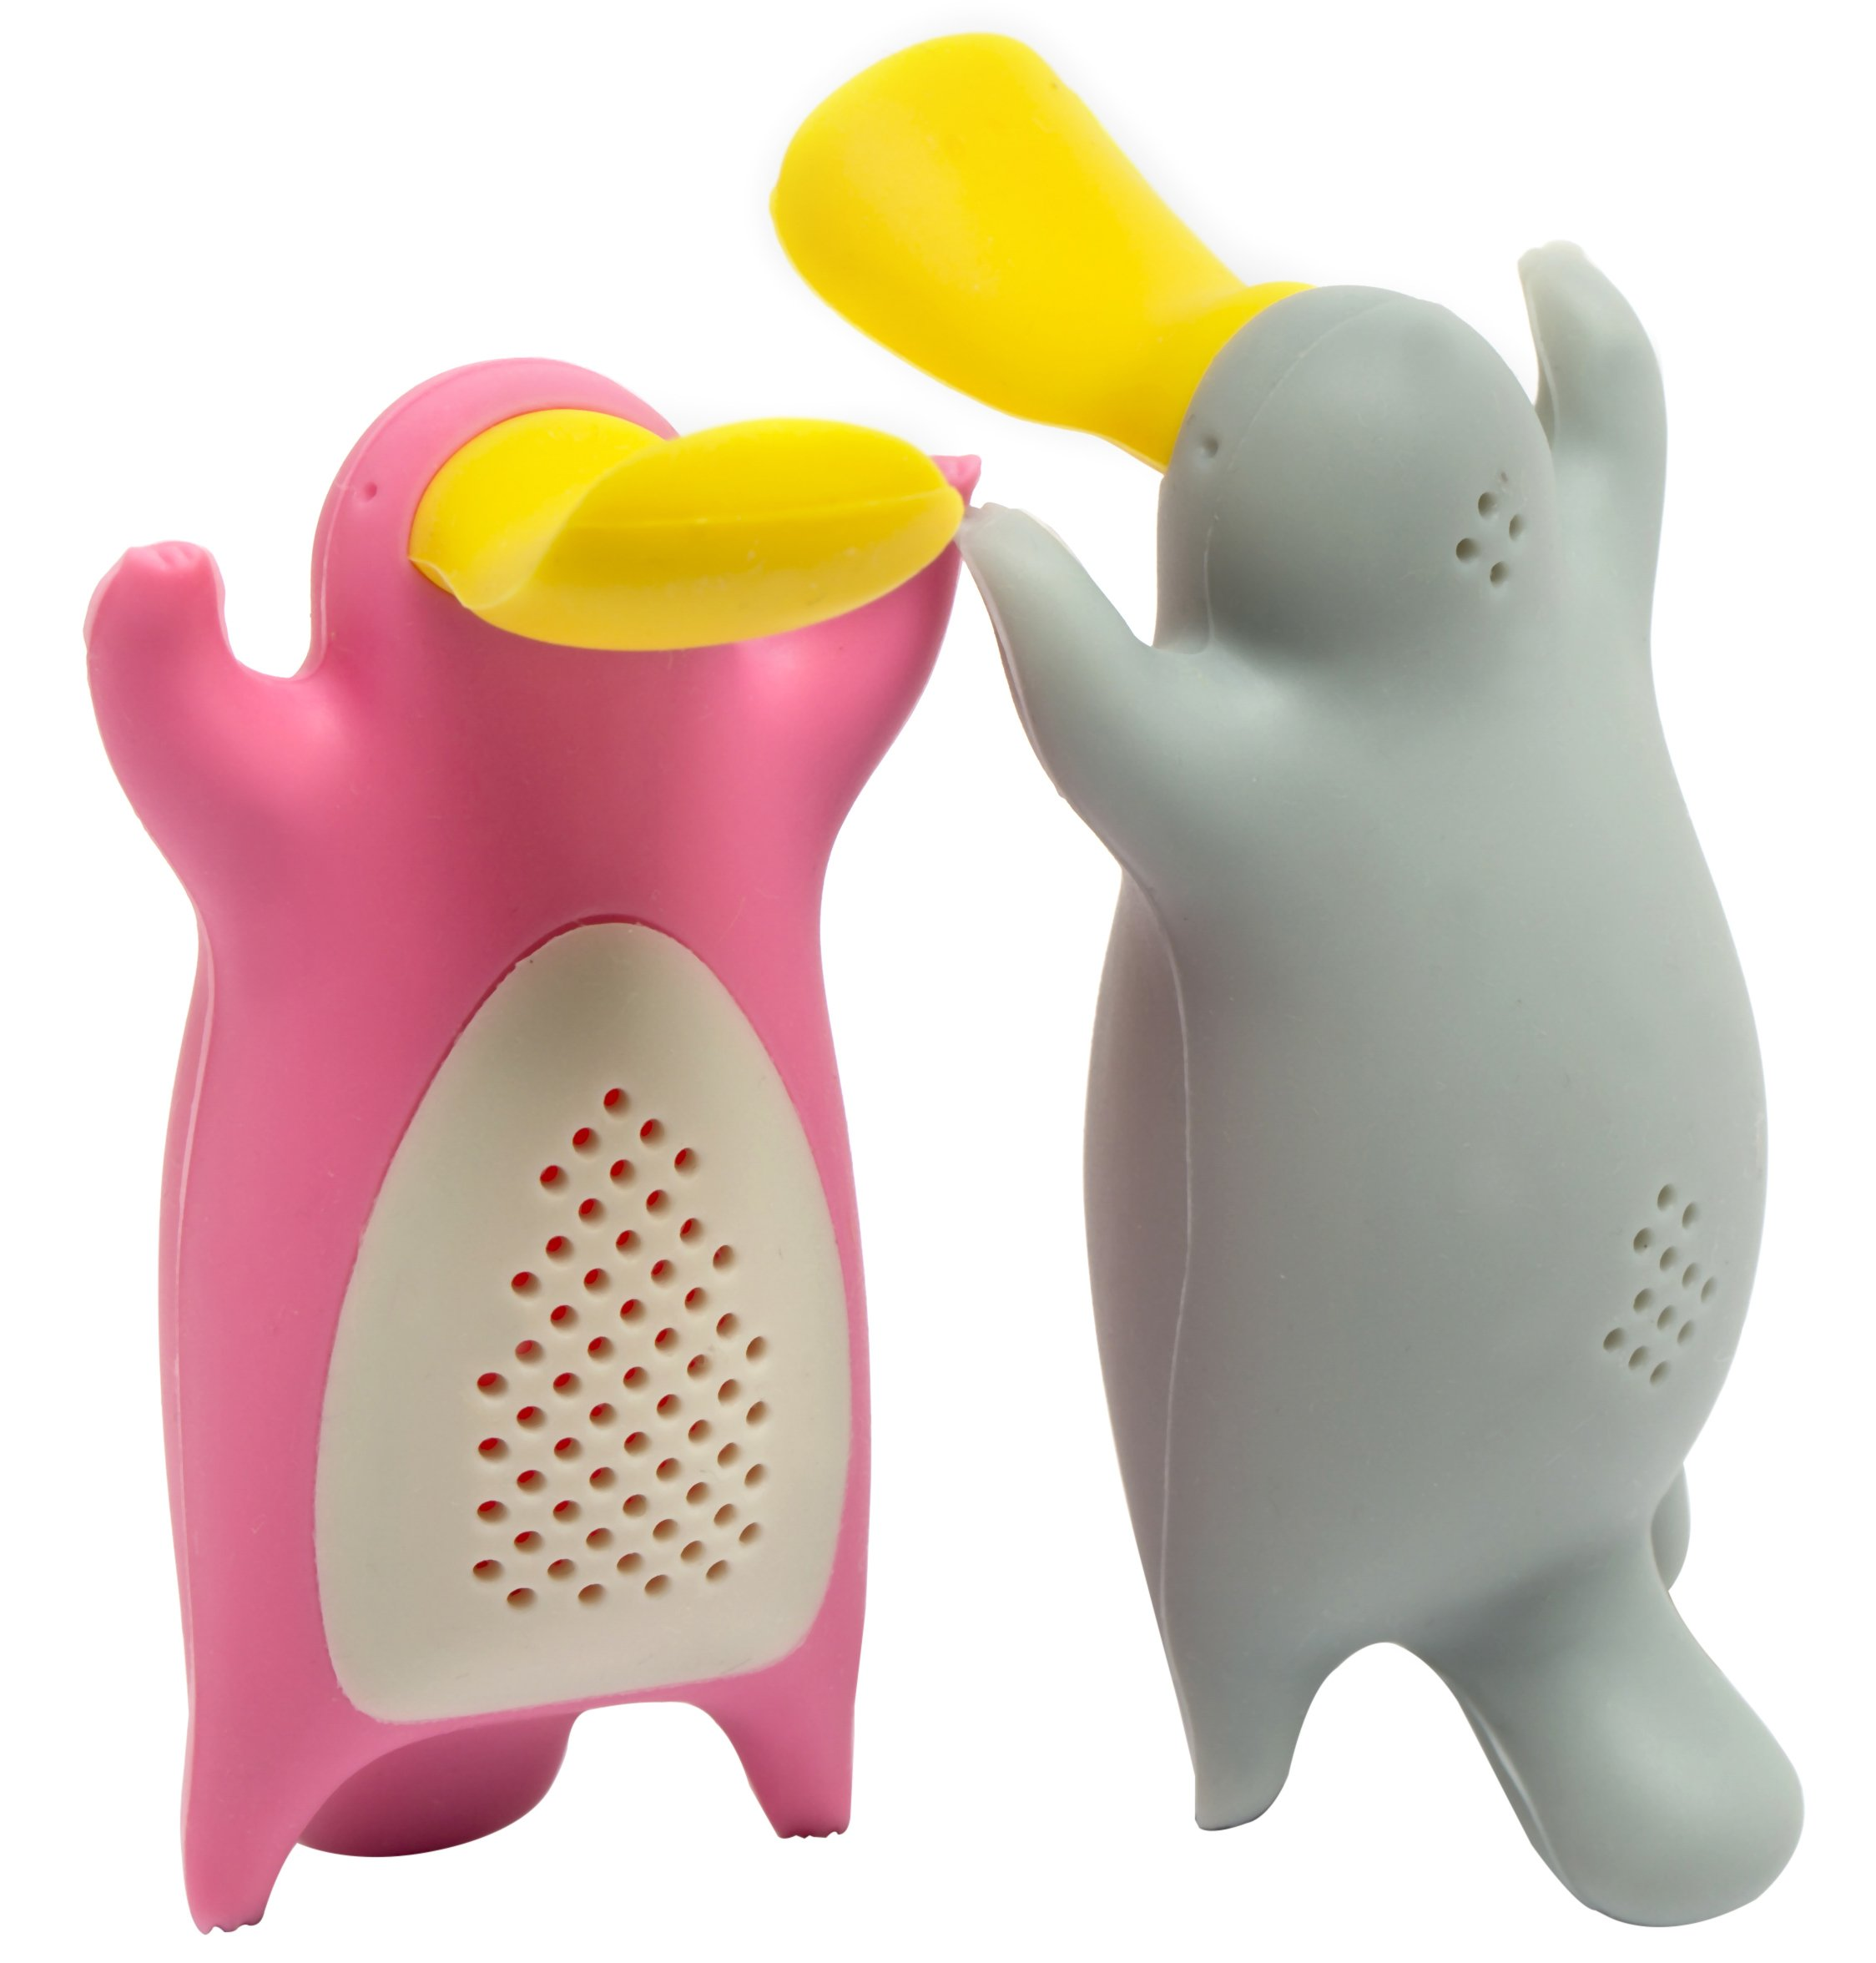 Tea Infuser Gift Set for Loose Leaf Tea, Cute Platypus Tea Strainer Pair in Lovely Gift Box, Ideal Couples Gift, Set of 2, Grey and Pink by MiraMiko (Image #1)